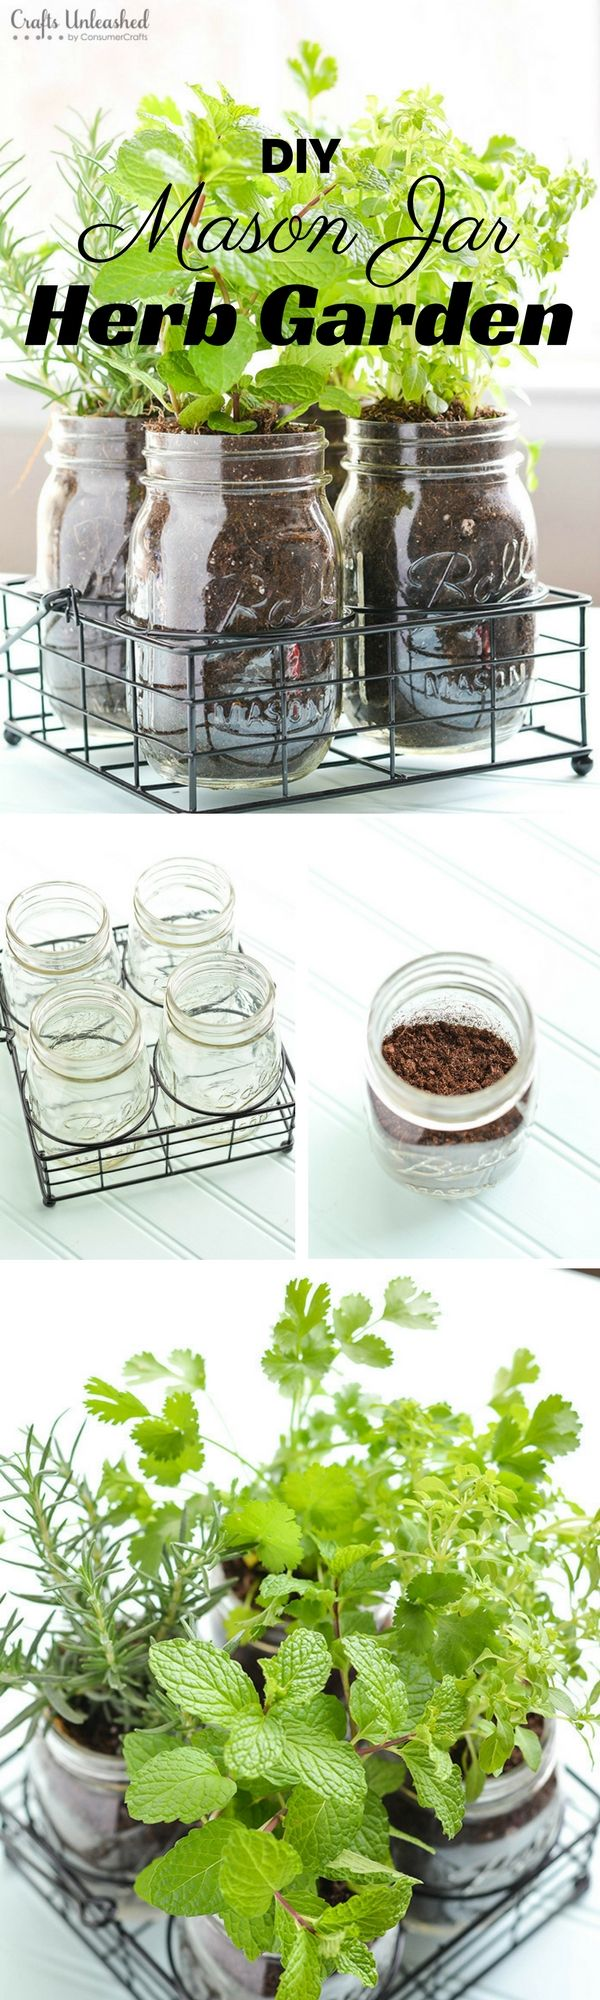 Check out the tutorial: #DIY Mason Jar Herb Garden @istandarddesign